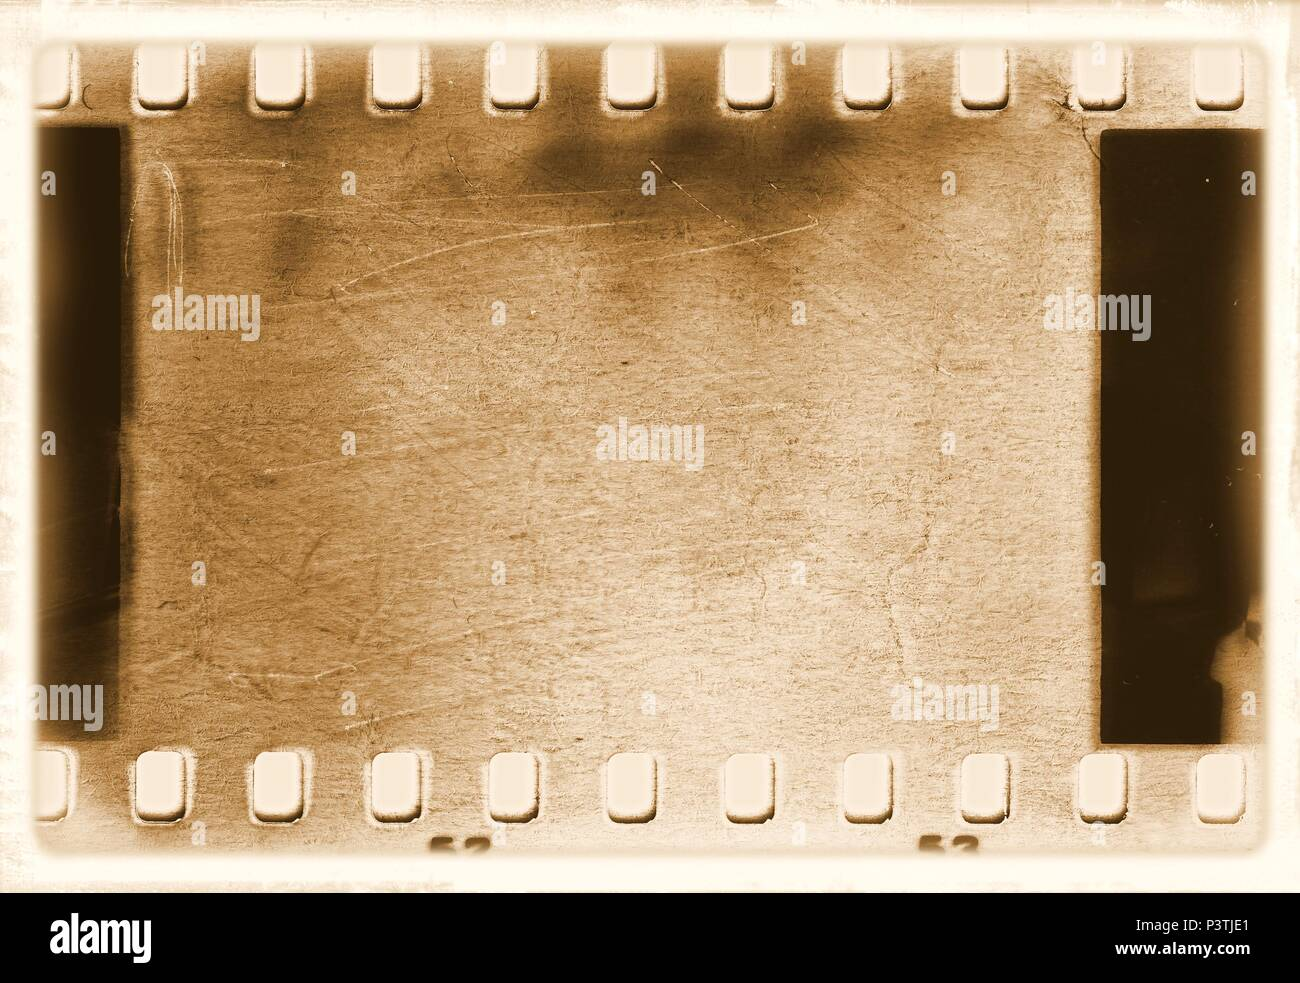 Vintage film strip frame in sepia tones. Stock Photo